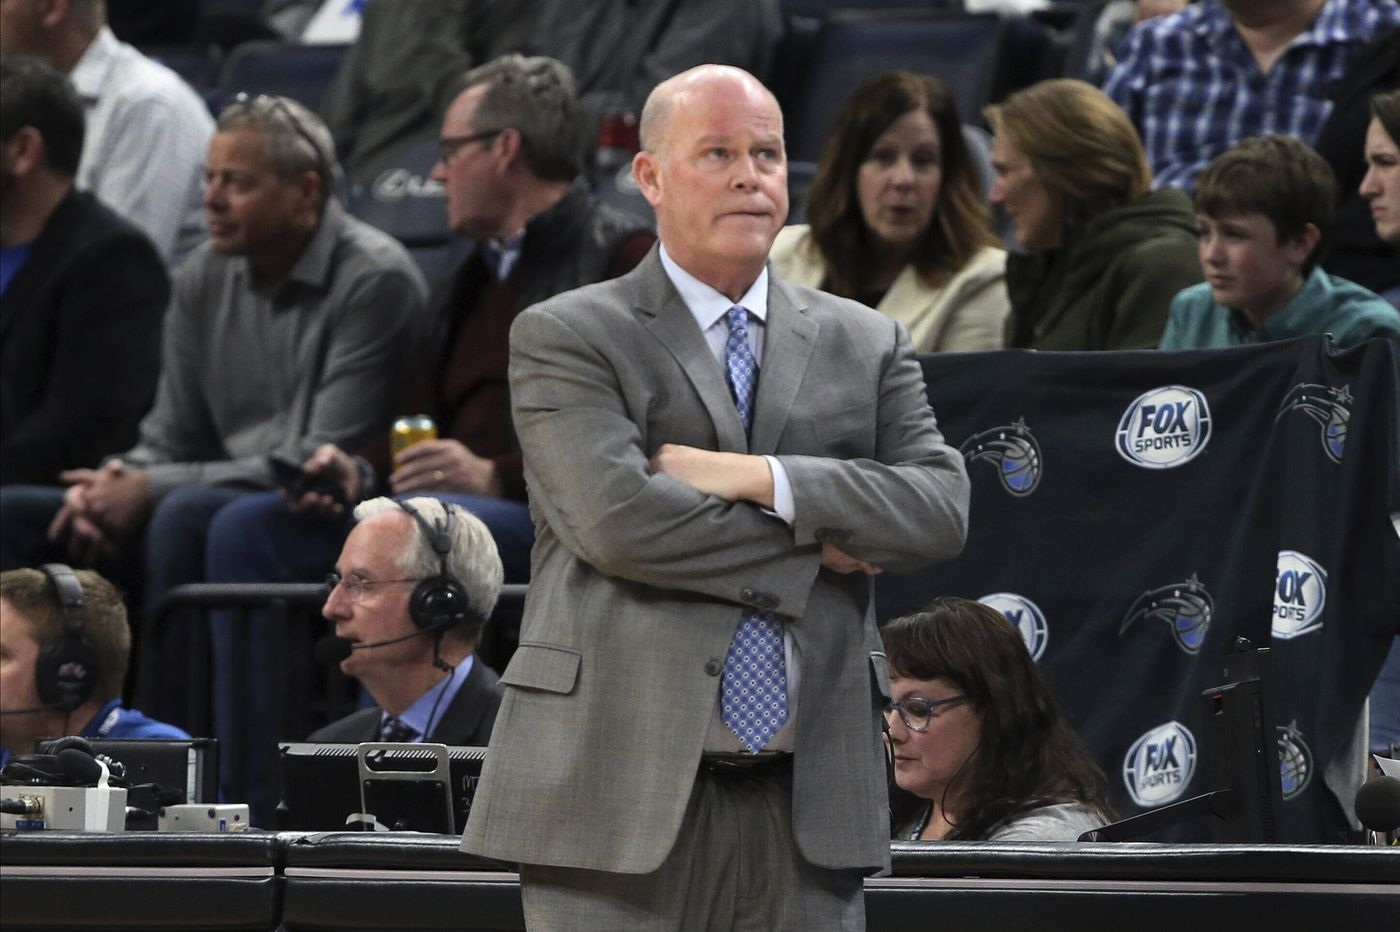 Magic coach Steve Clifford offers a lesson in racial justice before Sixers game